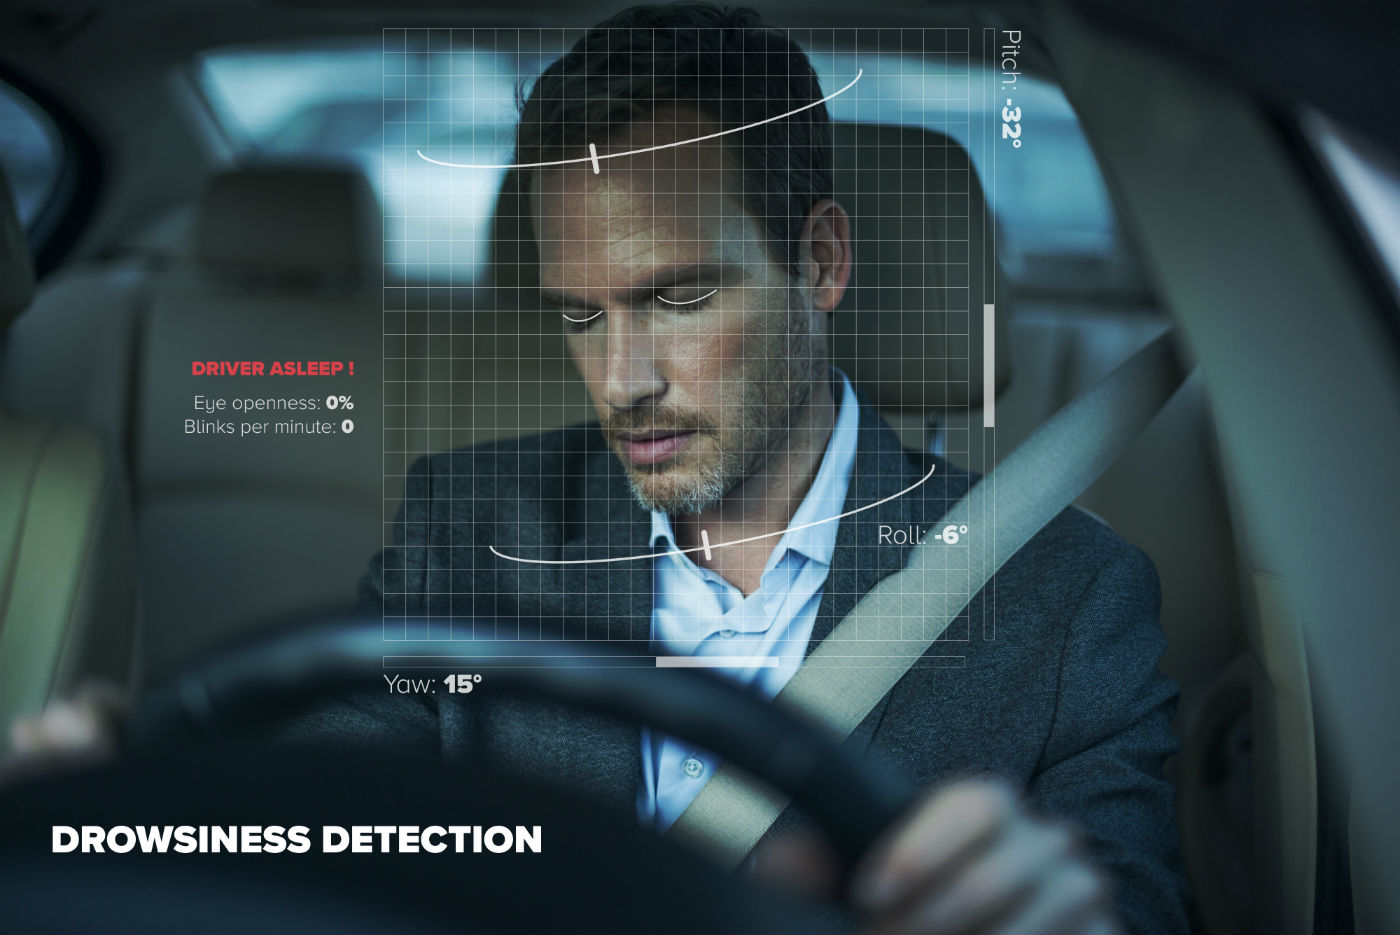 DMS - Driver Monitoring System detects sleep, sleepy driver, fatigue, driving safely